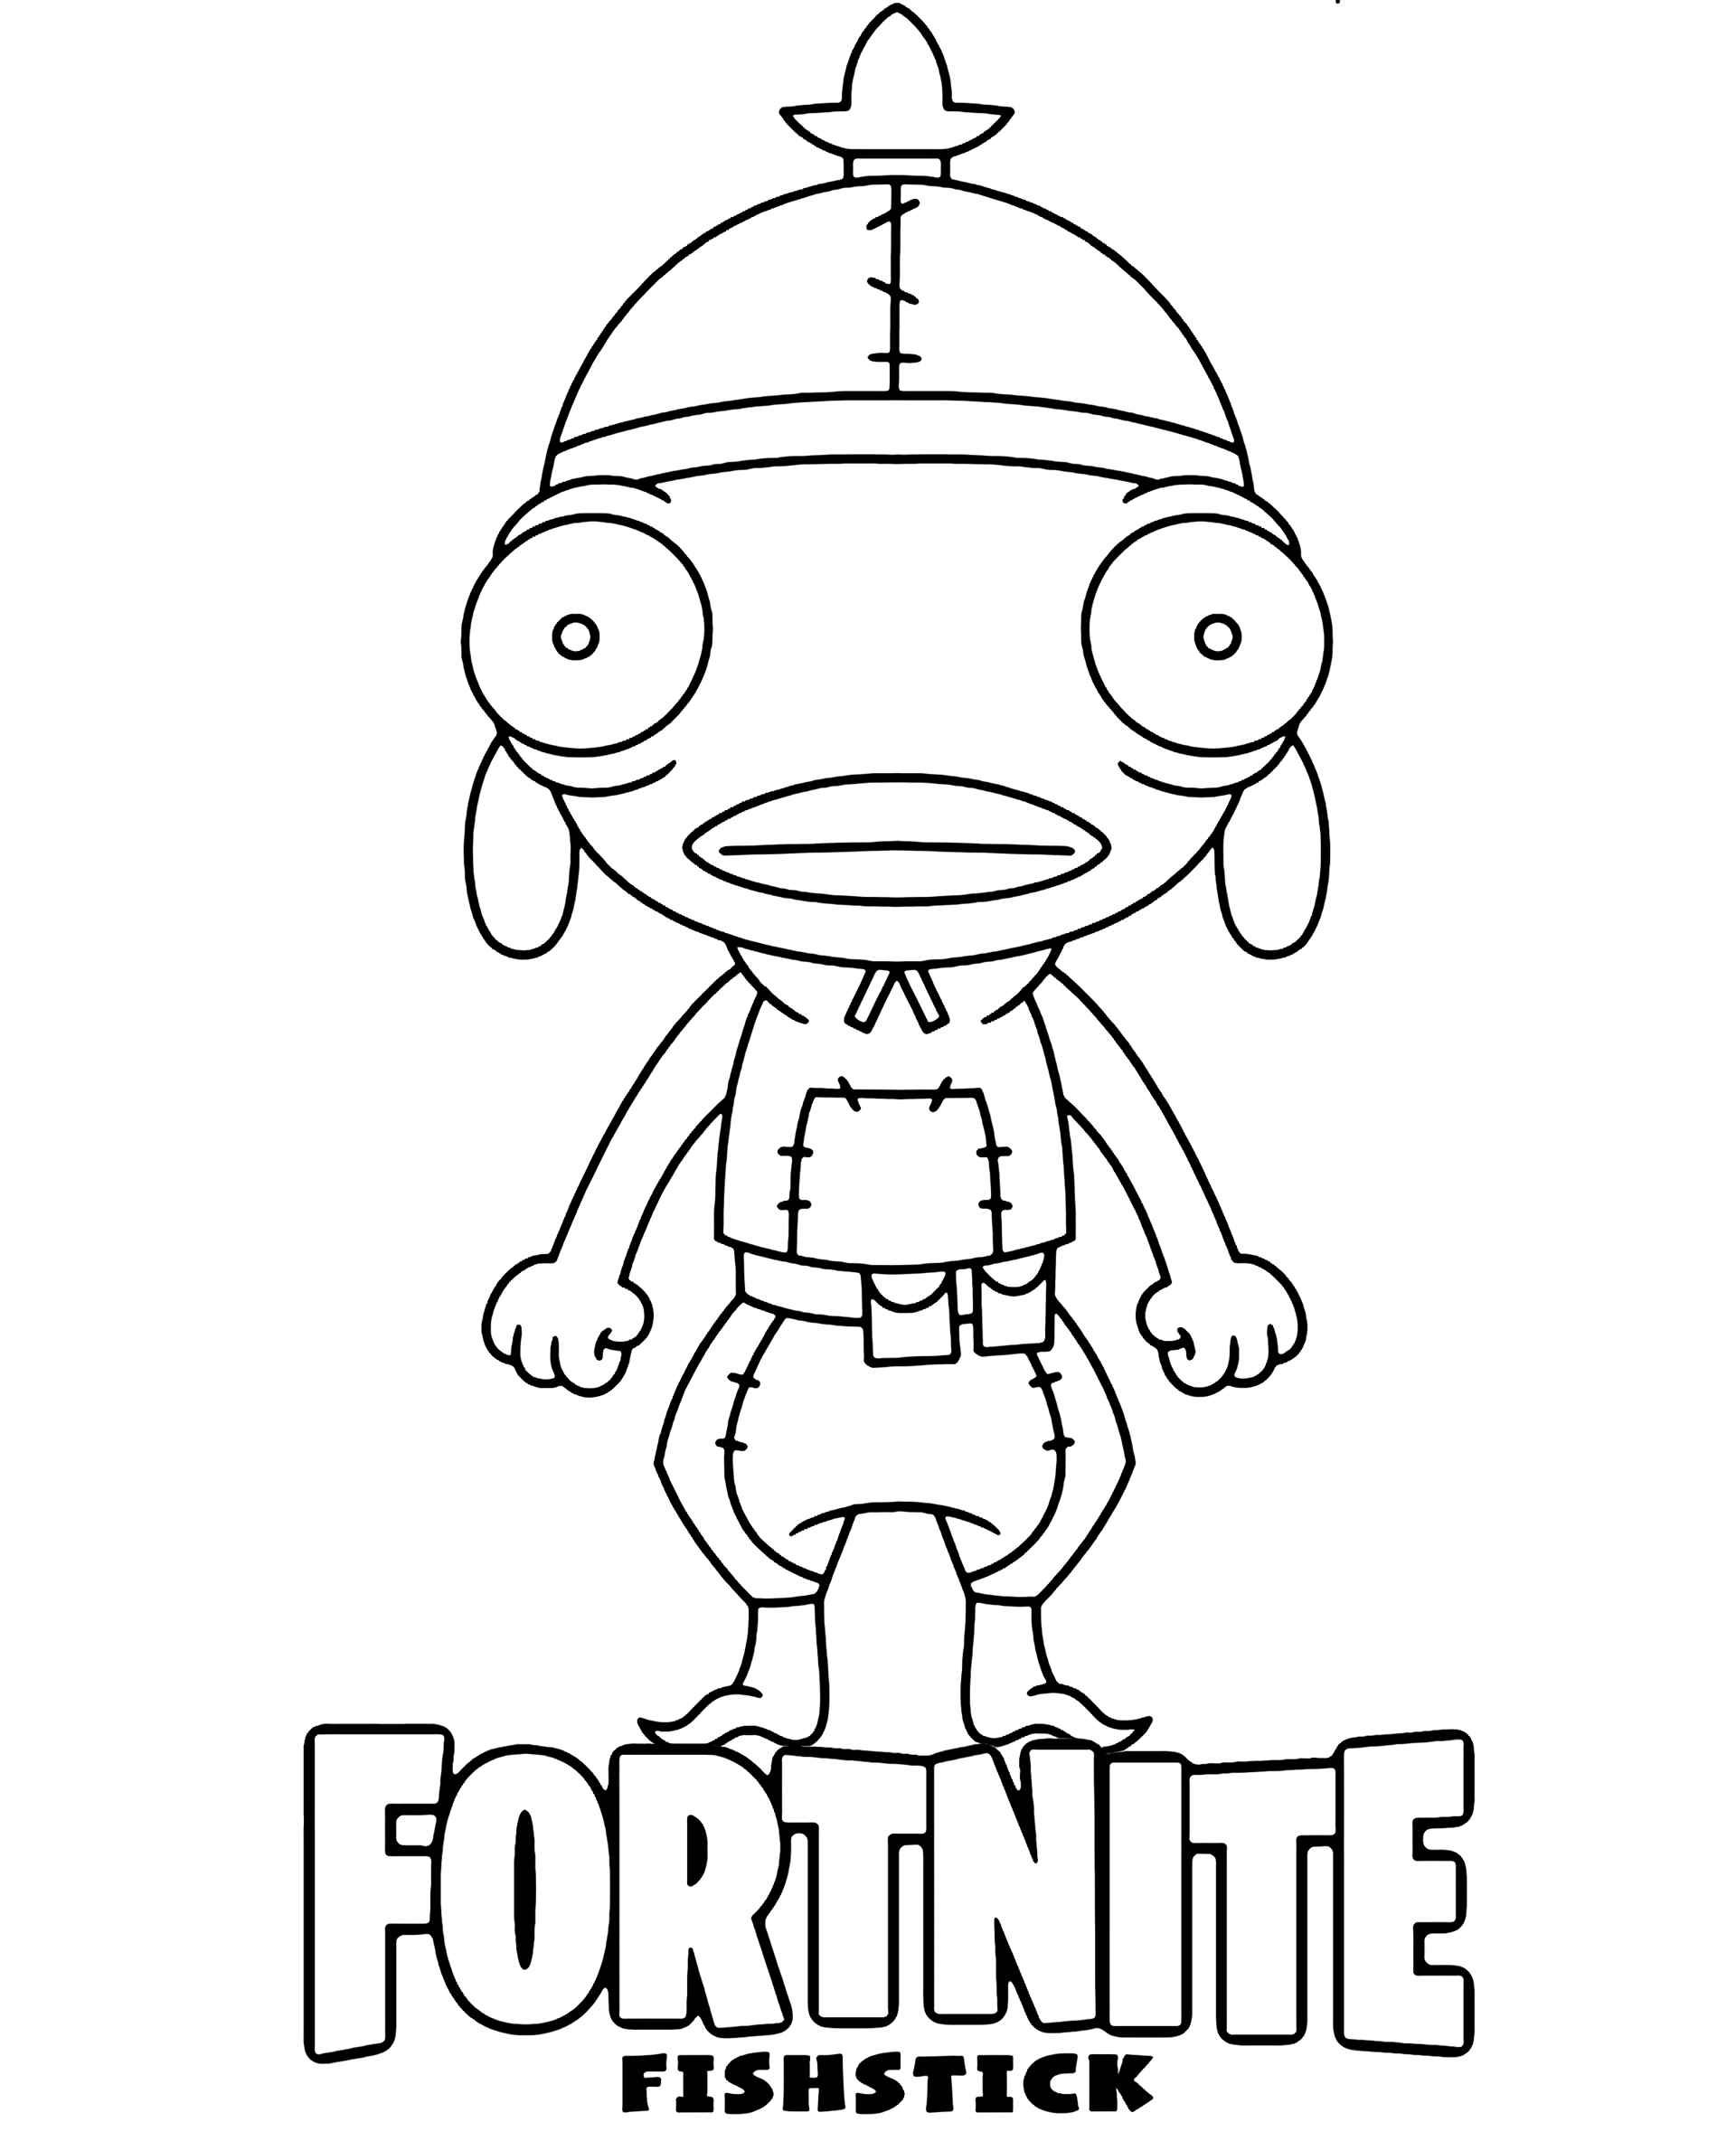 Image Of The Fishstick Chibi Skin From The Game Fortnite